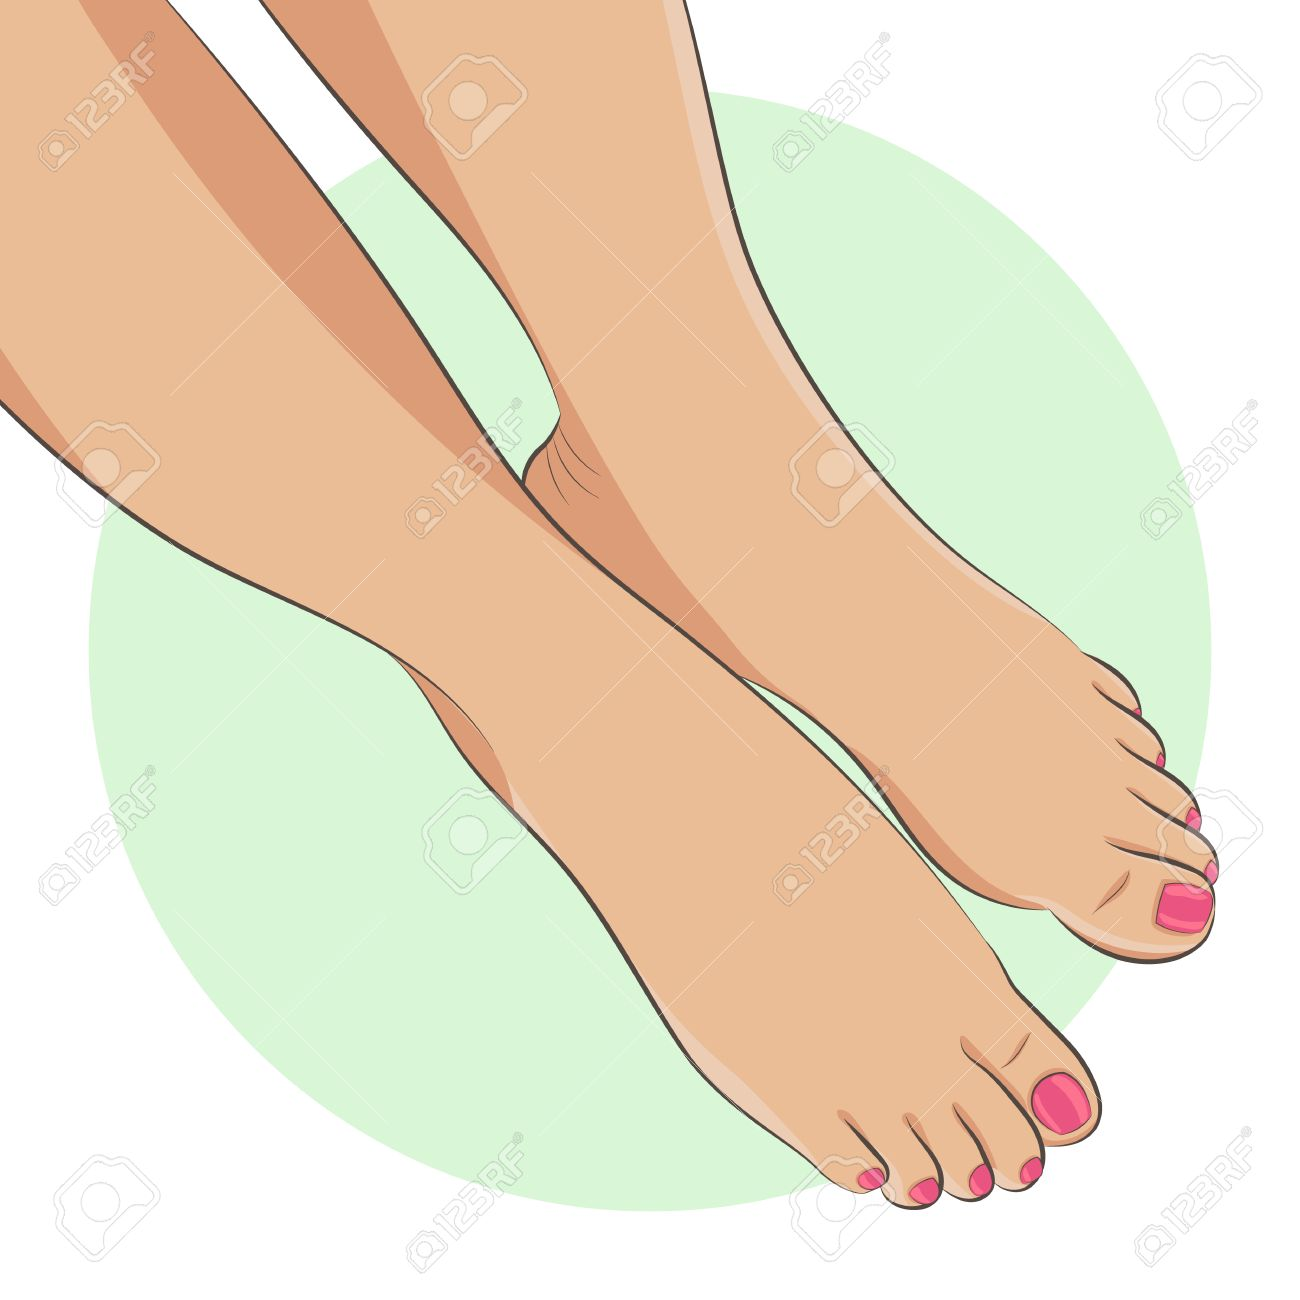 Bare Female Feet With Pedicure, Pink Toenails. Front View, Close Up. Foot